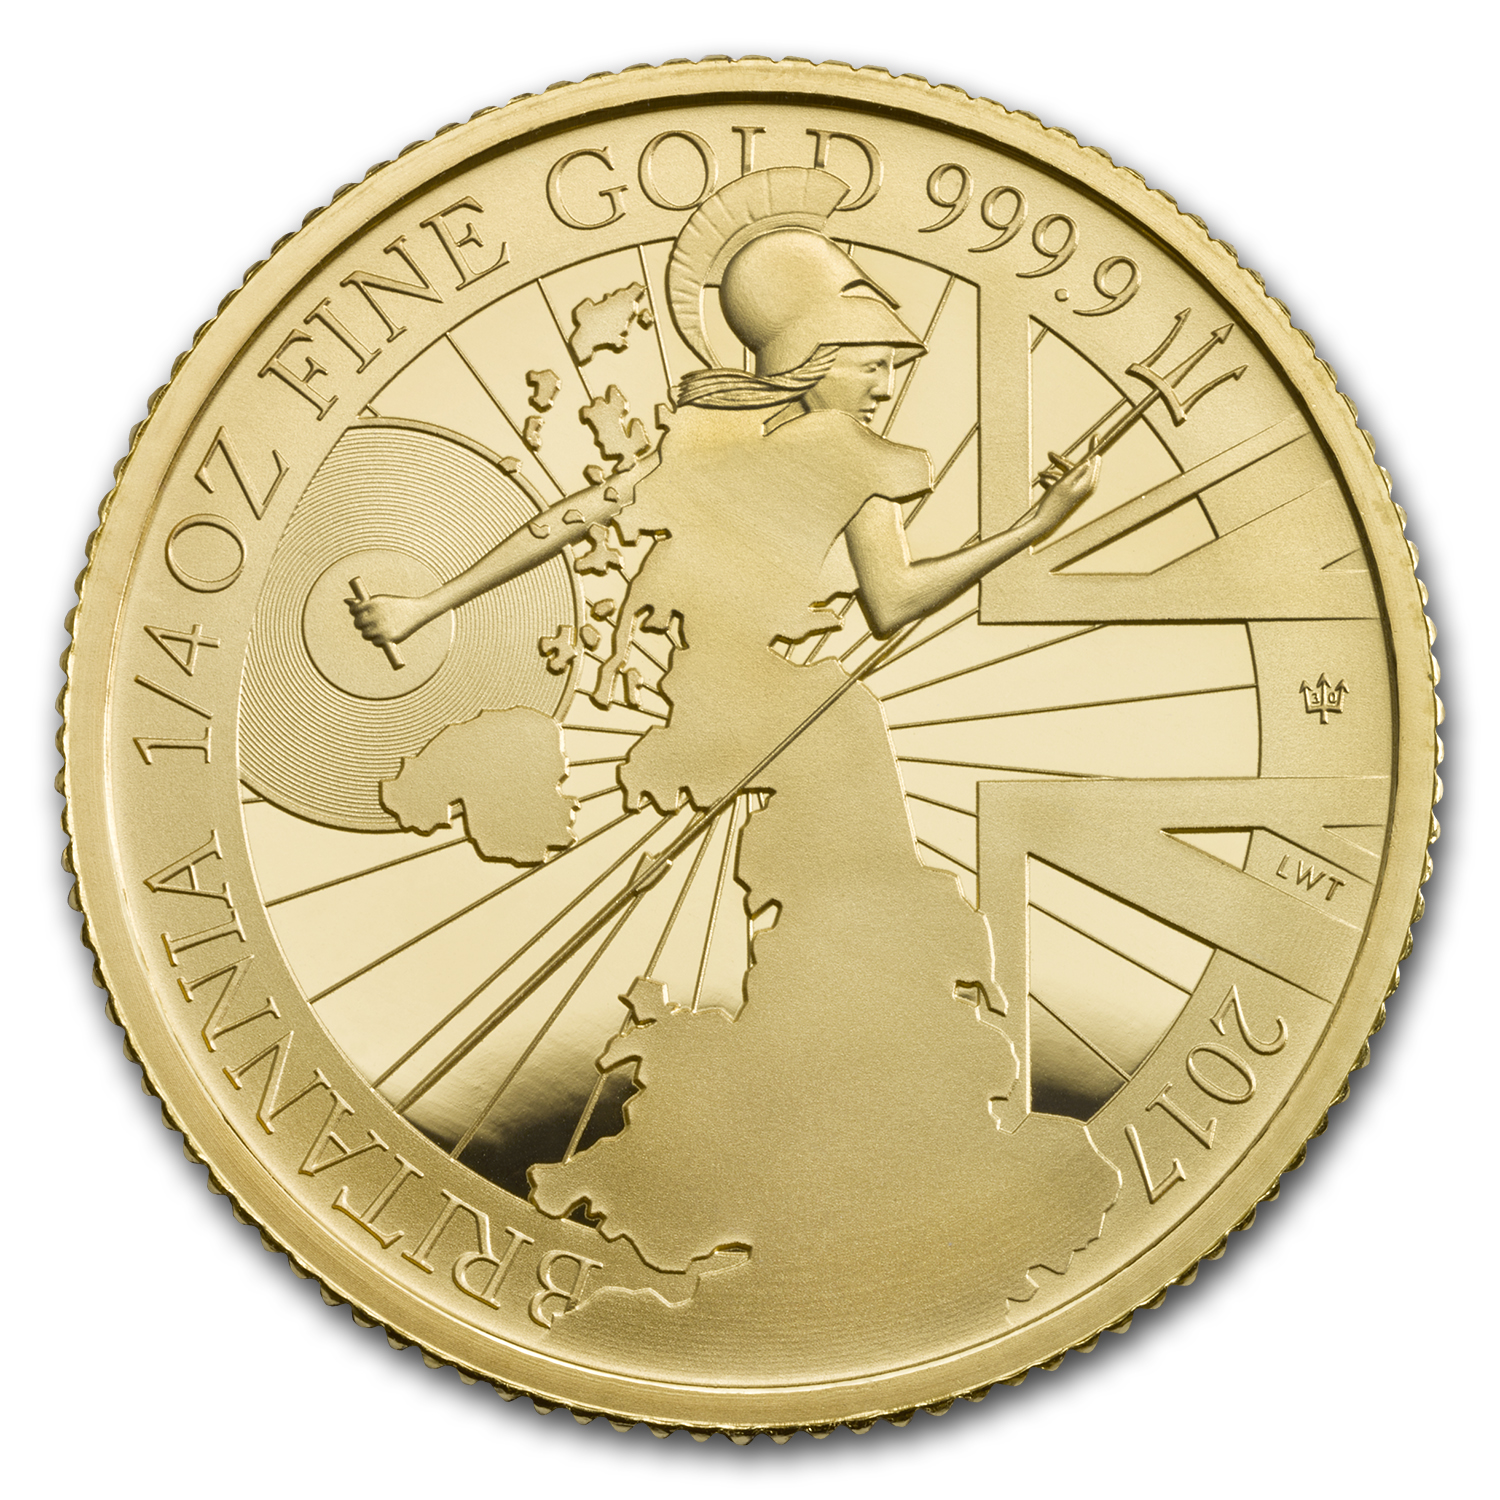 2017 Great Britain 1/4 oz Proof Gold Britannia